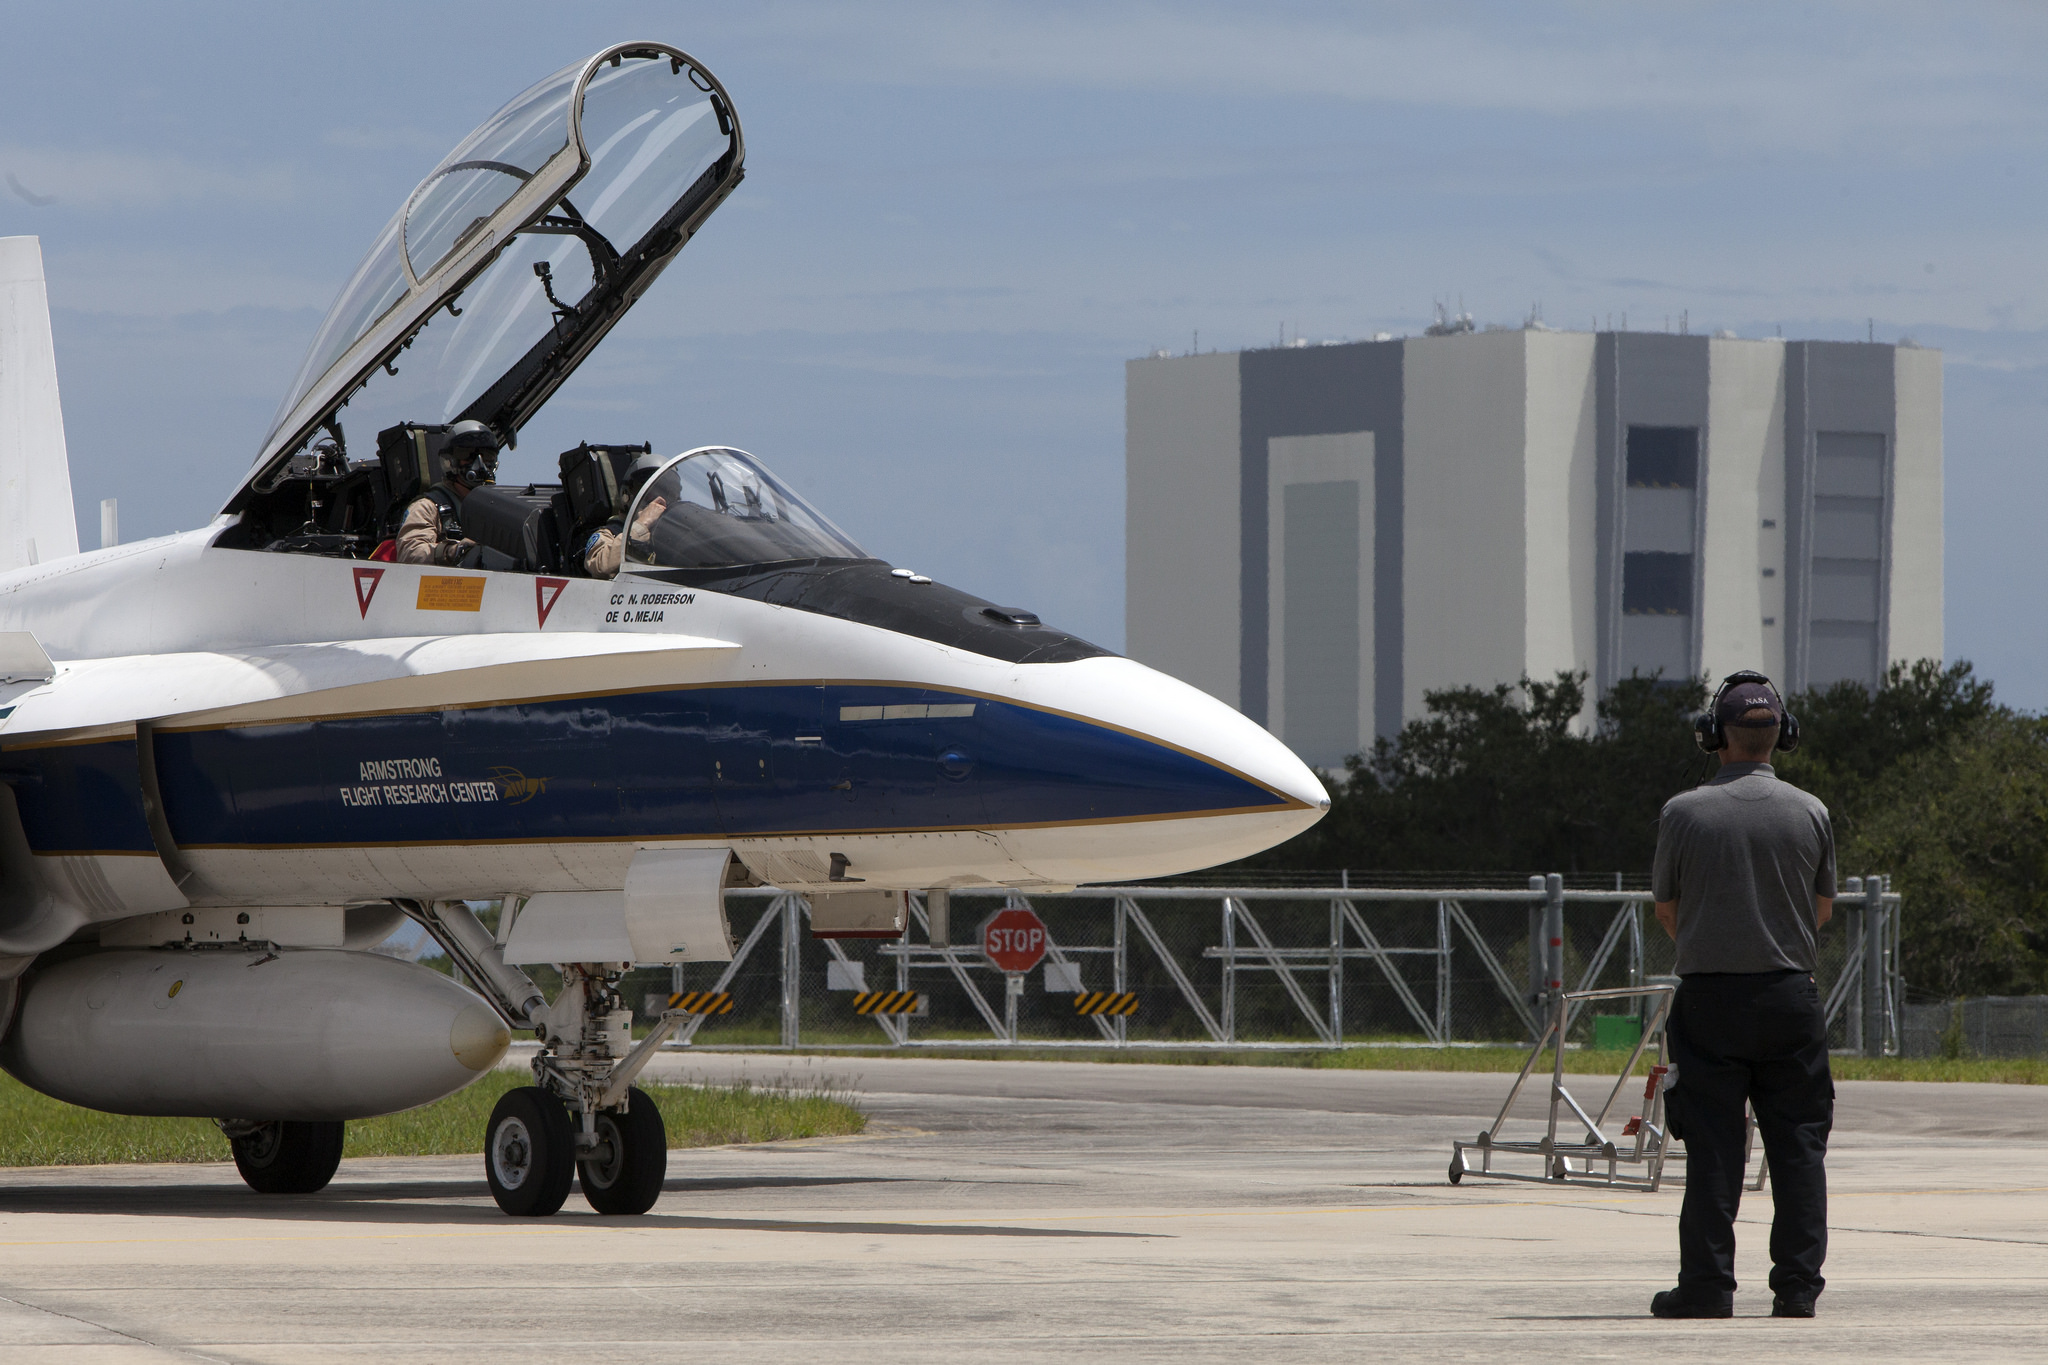 nasa shuttle facility men The runway in florida where space shuttles touched down for nearly 30 years has a new commercial mission nasa handed over its historic shuttle landing facility at kennedy space center to.